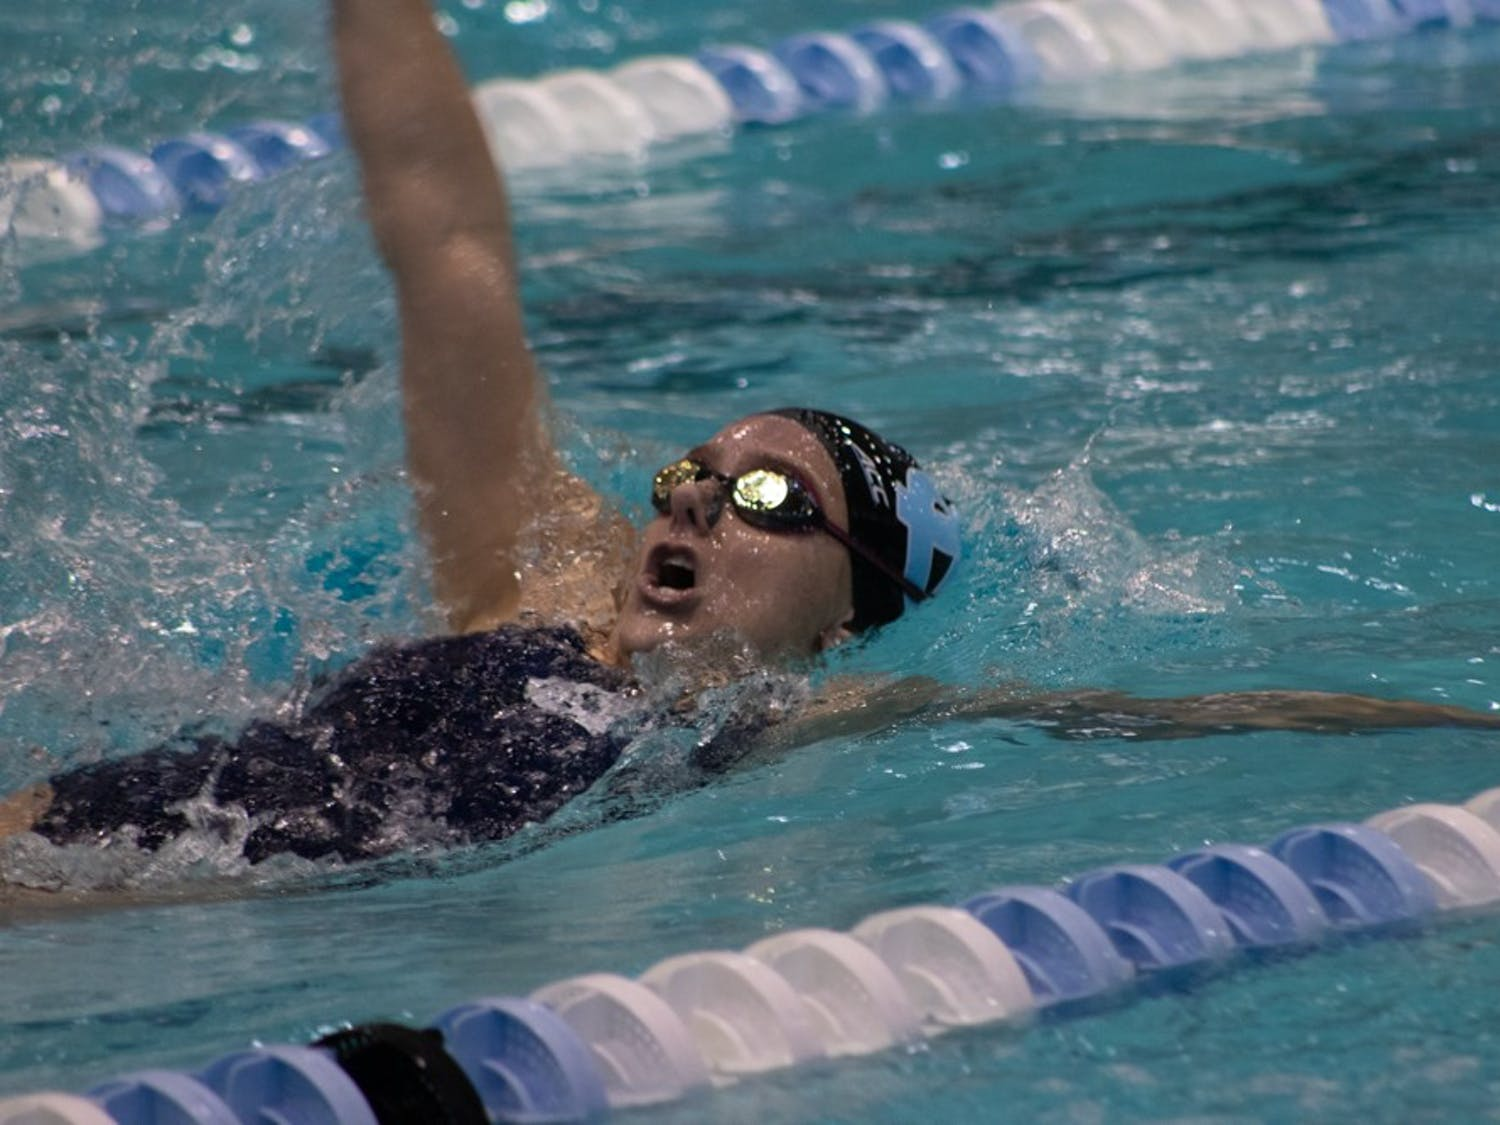 Junior Mary-O Soule competes in the Women's 200-yard backstroke against Georgia on Friday, Oct. 25, 2019 in Koury Natatorium. Georgia beat UNC's women 176-124 and men 163-137.